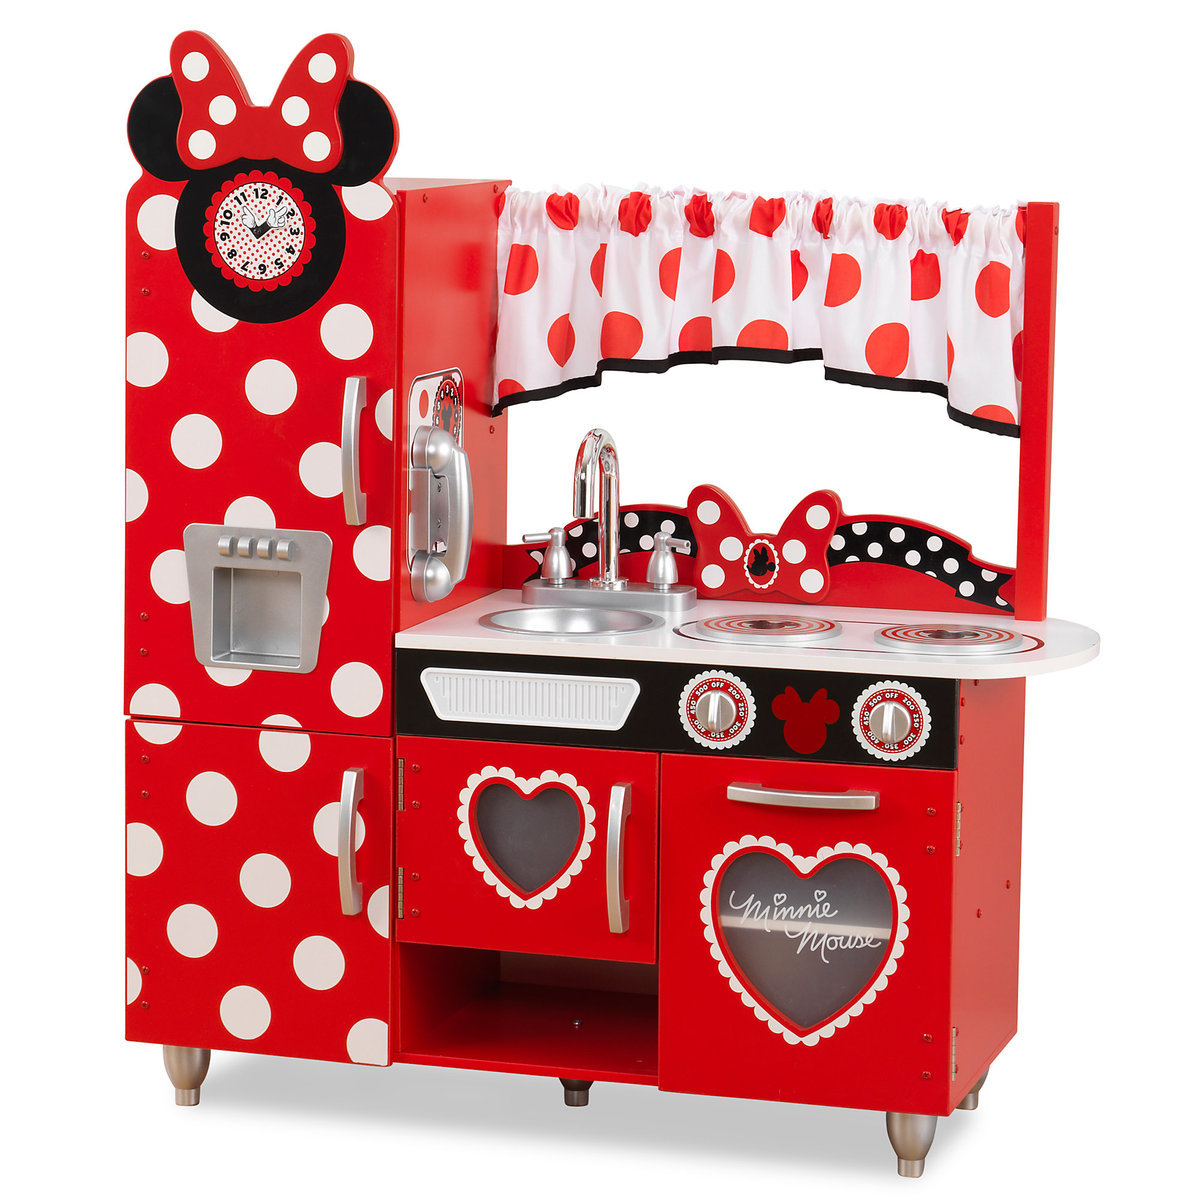 Minnie Mouse Vintage Play Kitchen by KidKraft | shopDisney